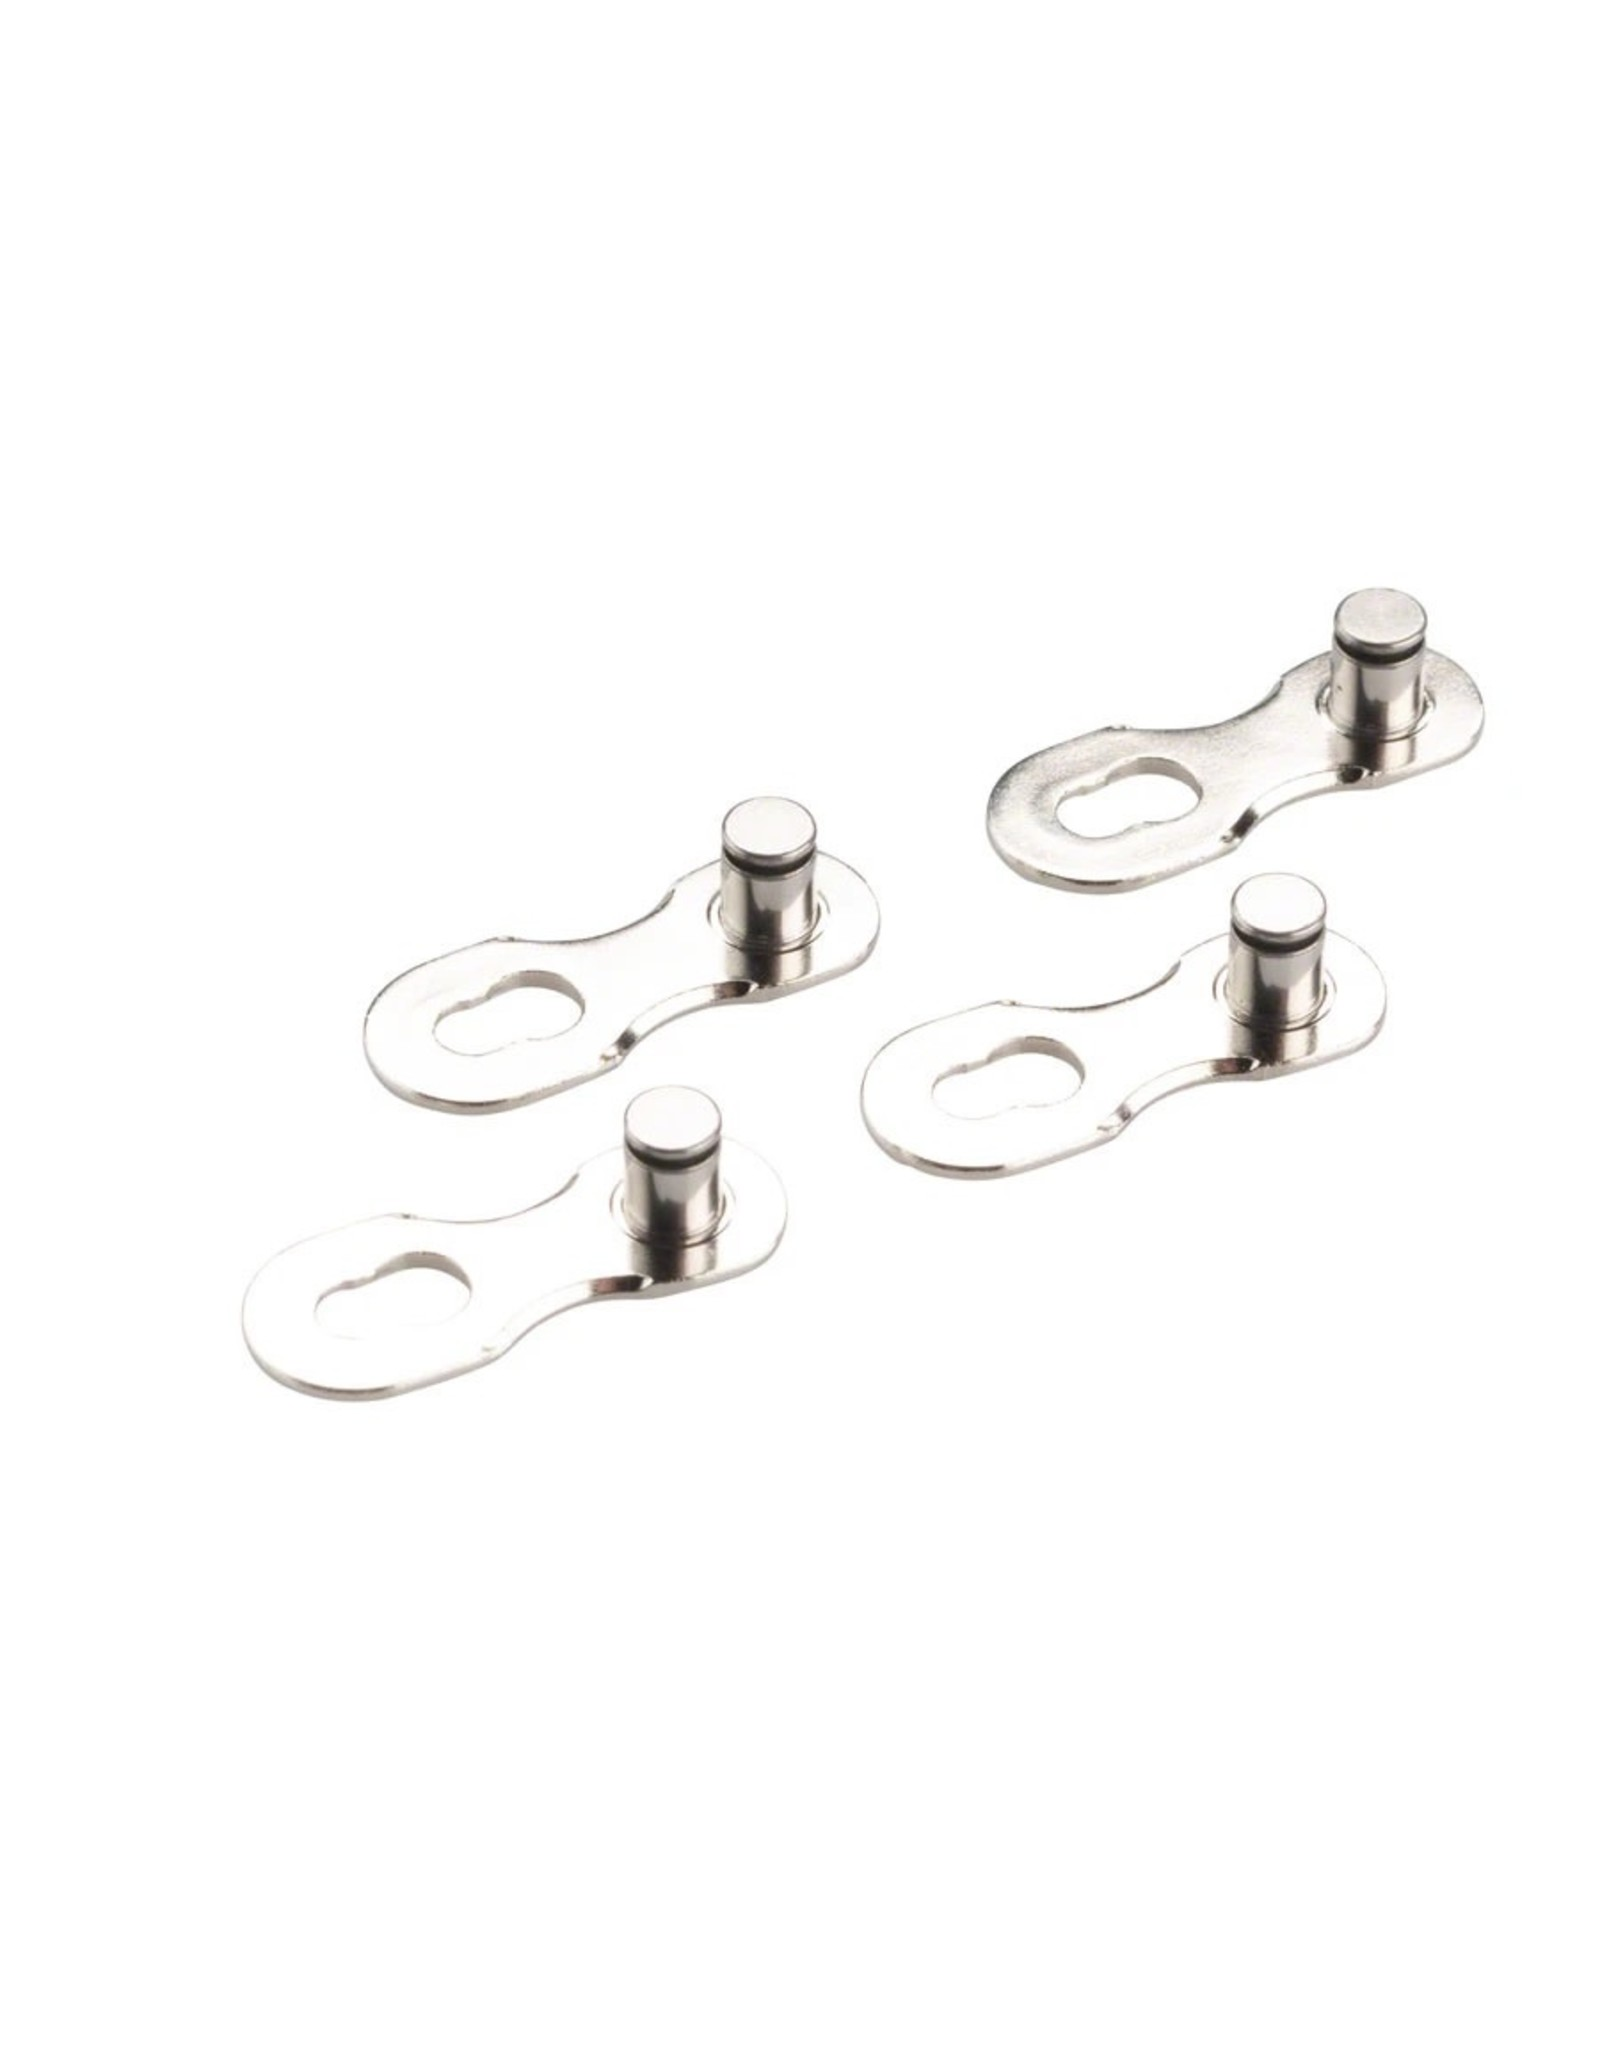 Shimano CHAIN QUICK LINK, SM-CN910-12, QUICK-LINK FOR CN-M9100, 1 SET=2 PAIRS FOR 2 CHAINS,